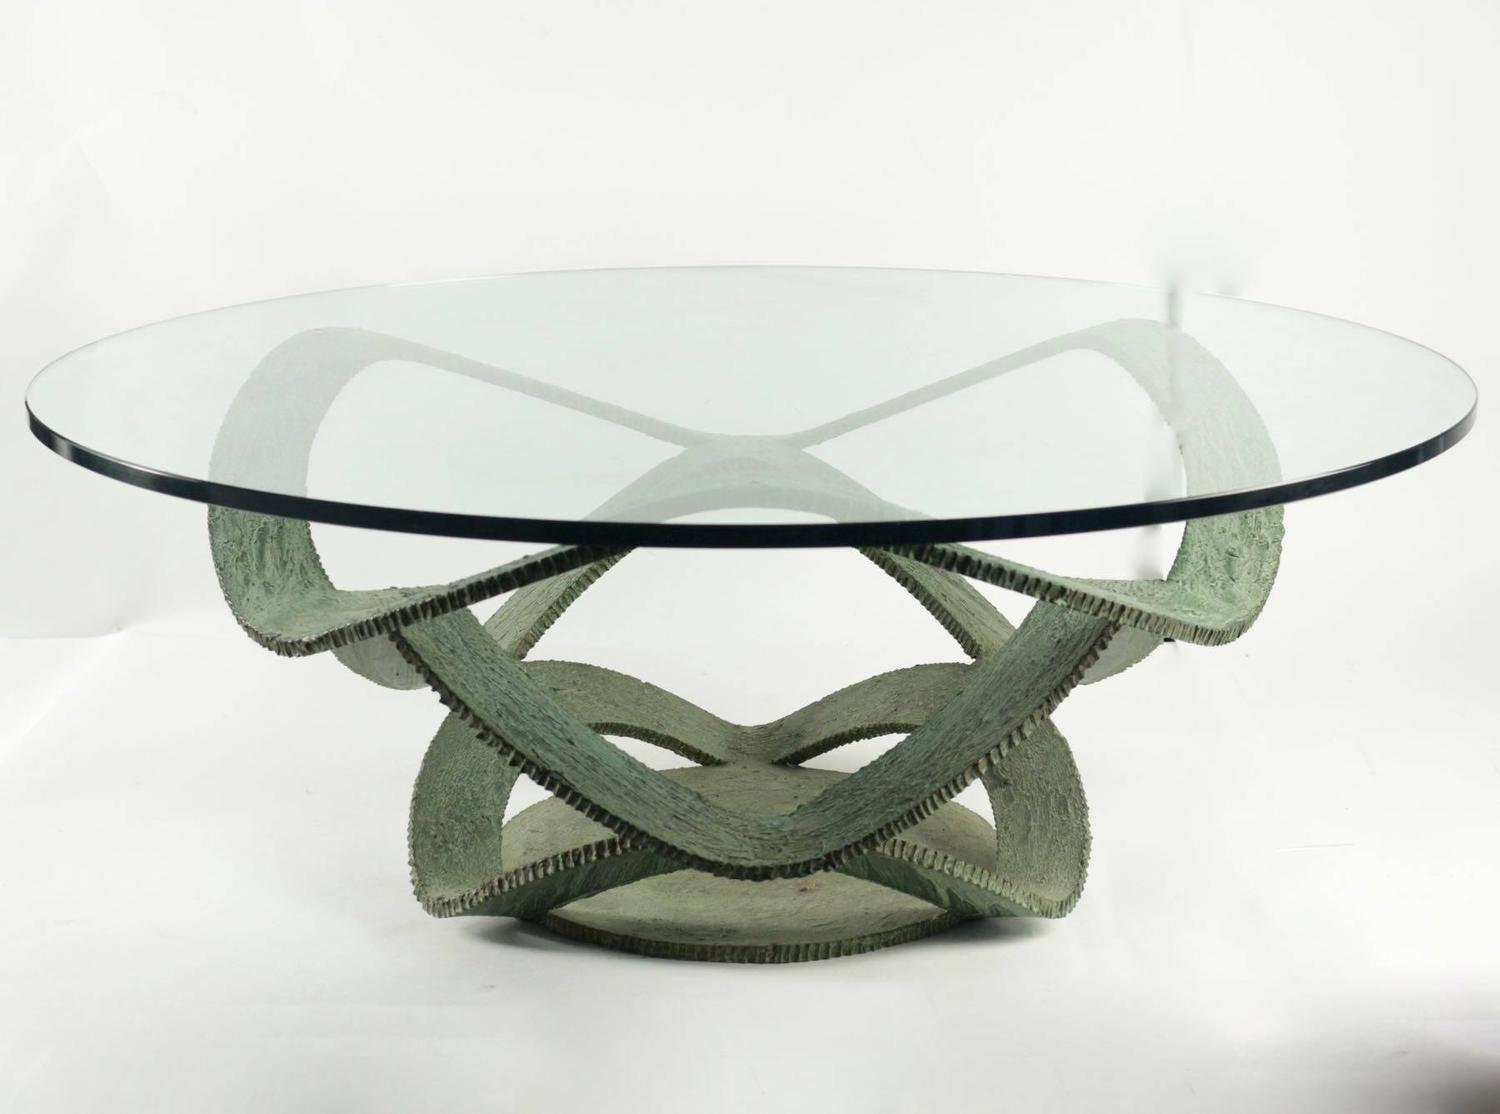 1960 Brutalist Coffee Table In Wrought Iron Verdigris Patina For Sale At 1stdibs